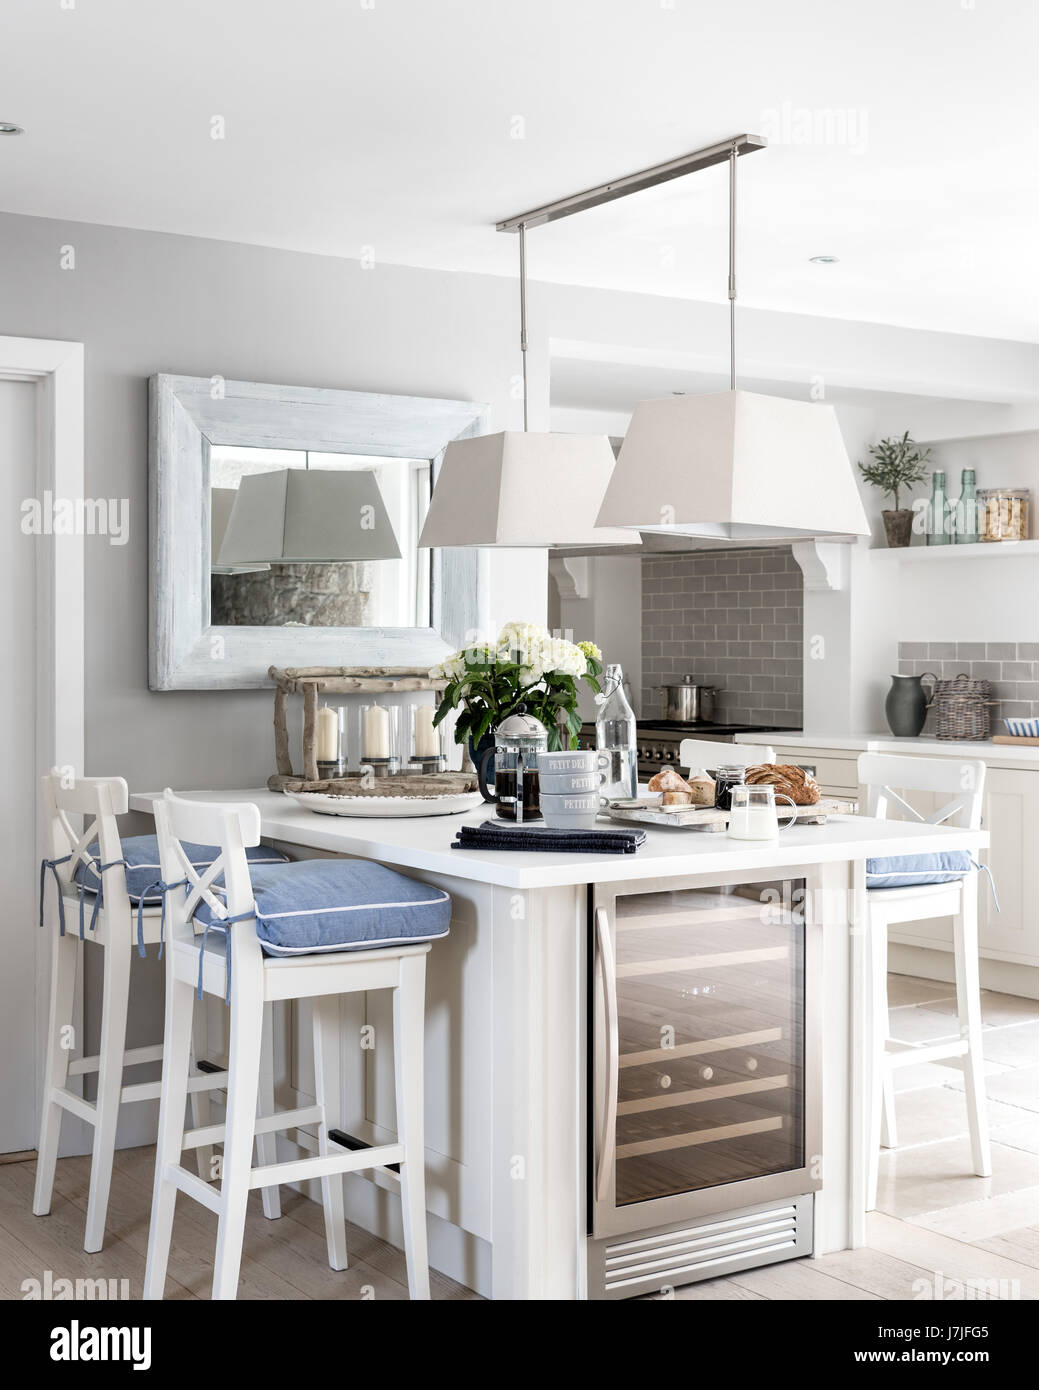 breakfast bar with white ingolf bar stools from ikea and chambray stock photo royalty free. Black Bedroom Furniture Sets. Home Design Ideas